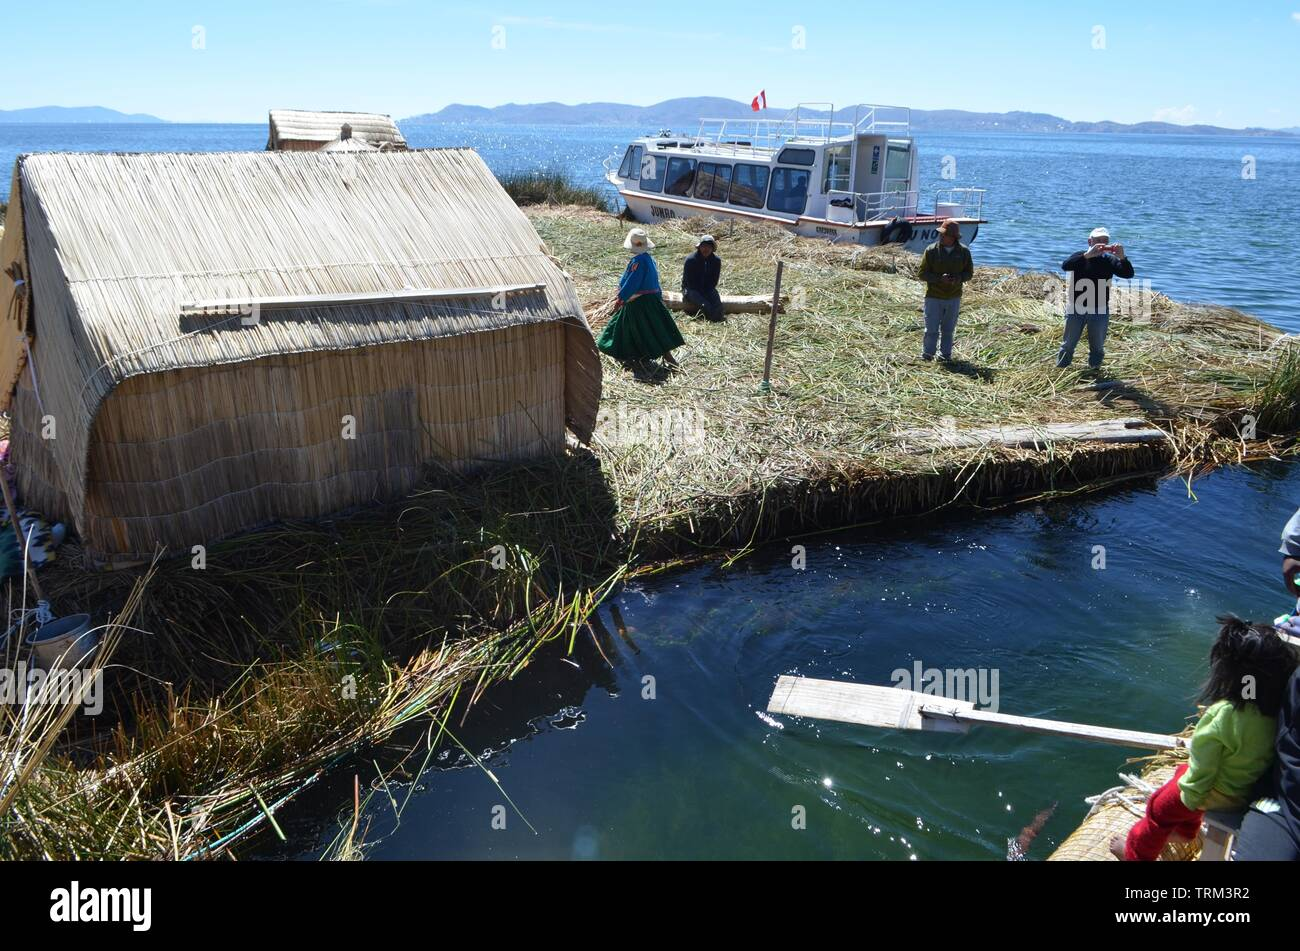 Titicaca,Puno,Peru .Floating houses on Lake Titicaca. - Stock Image